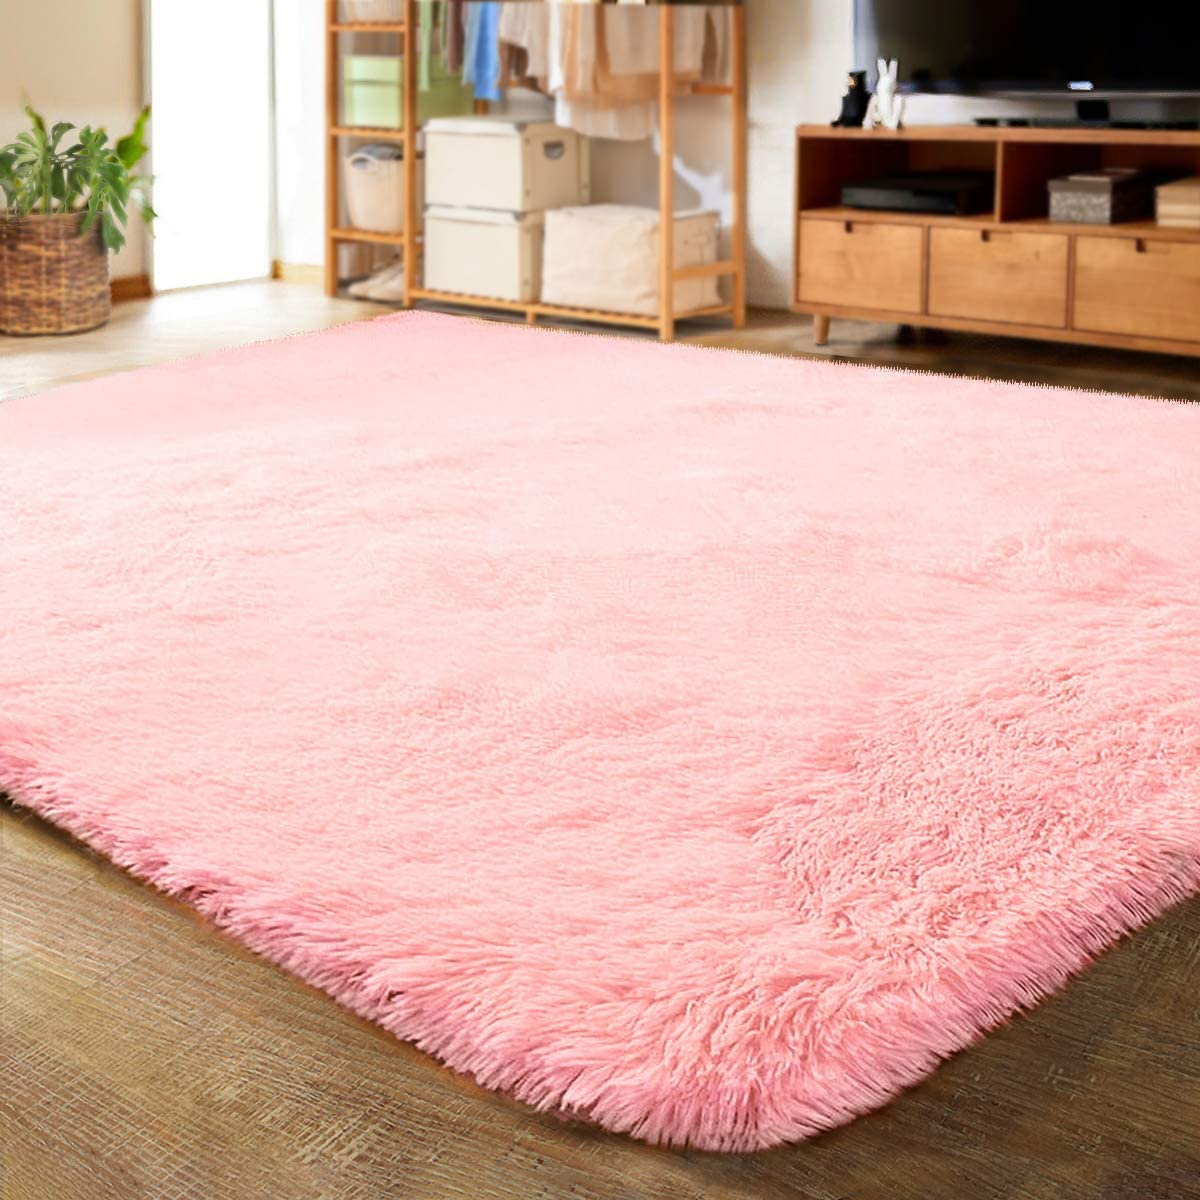 LOCHAS Ultra Soft Indoor Modern Area Rugs Fluffy Living Room Carpets for Children Bedroom Home Decor Nursery Rug 5.3x7.5 Feet, Pink: Furniture & Decor